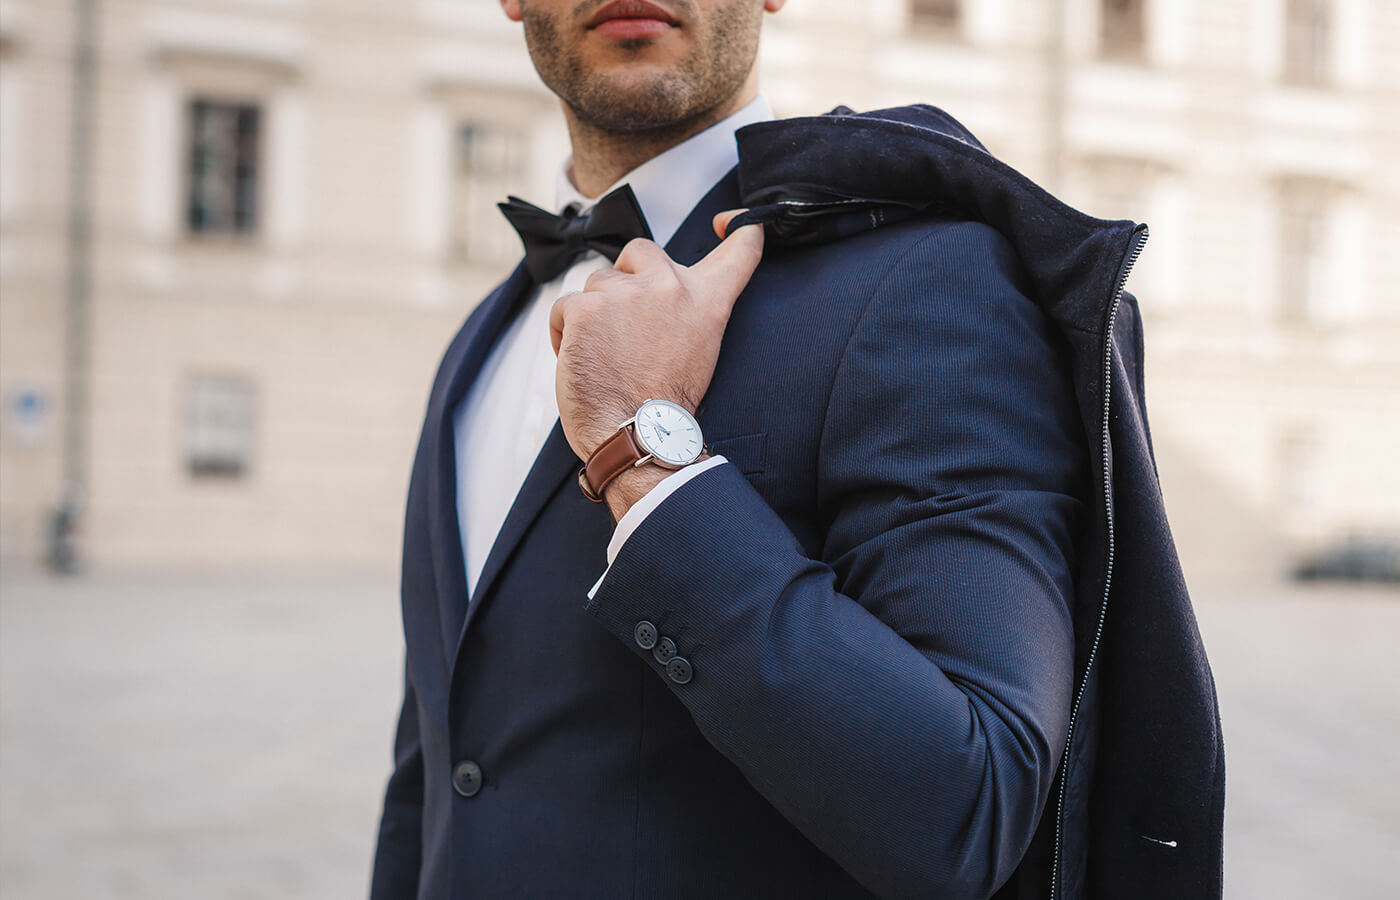 men with wrist watch